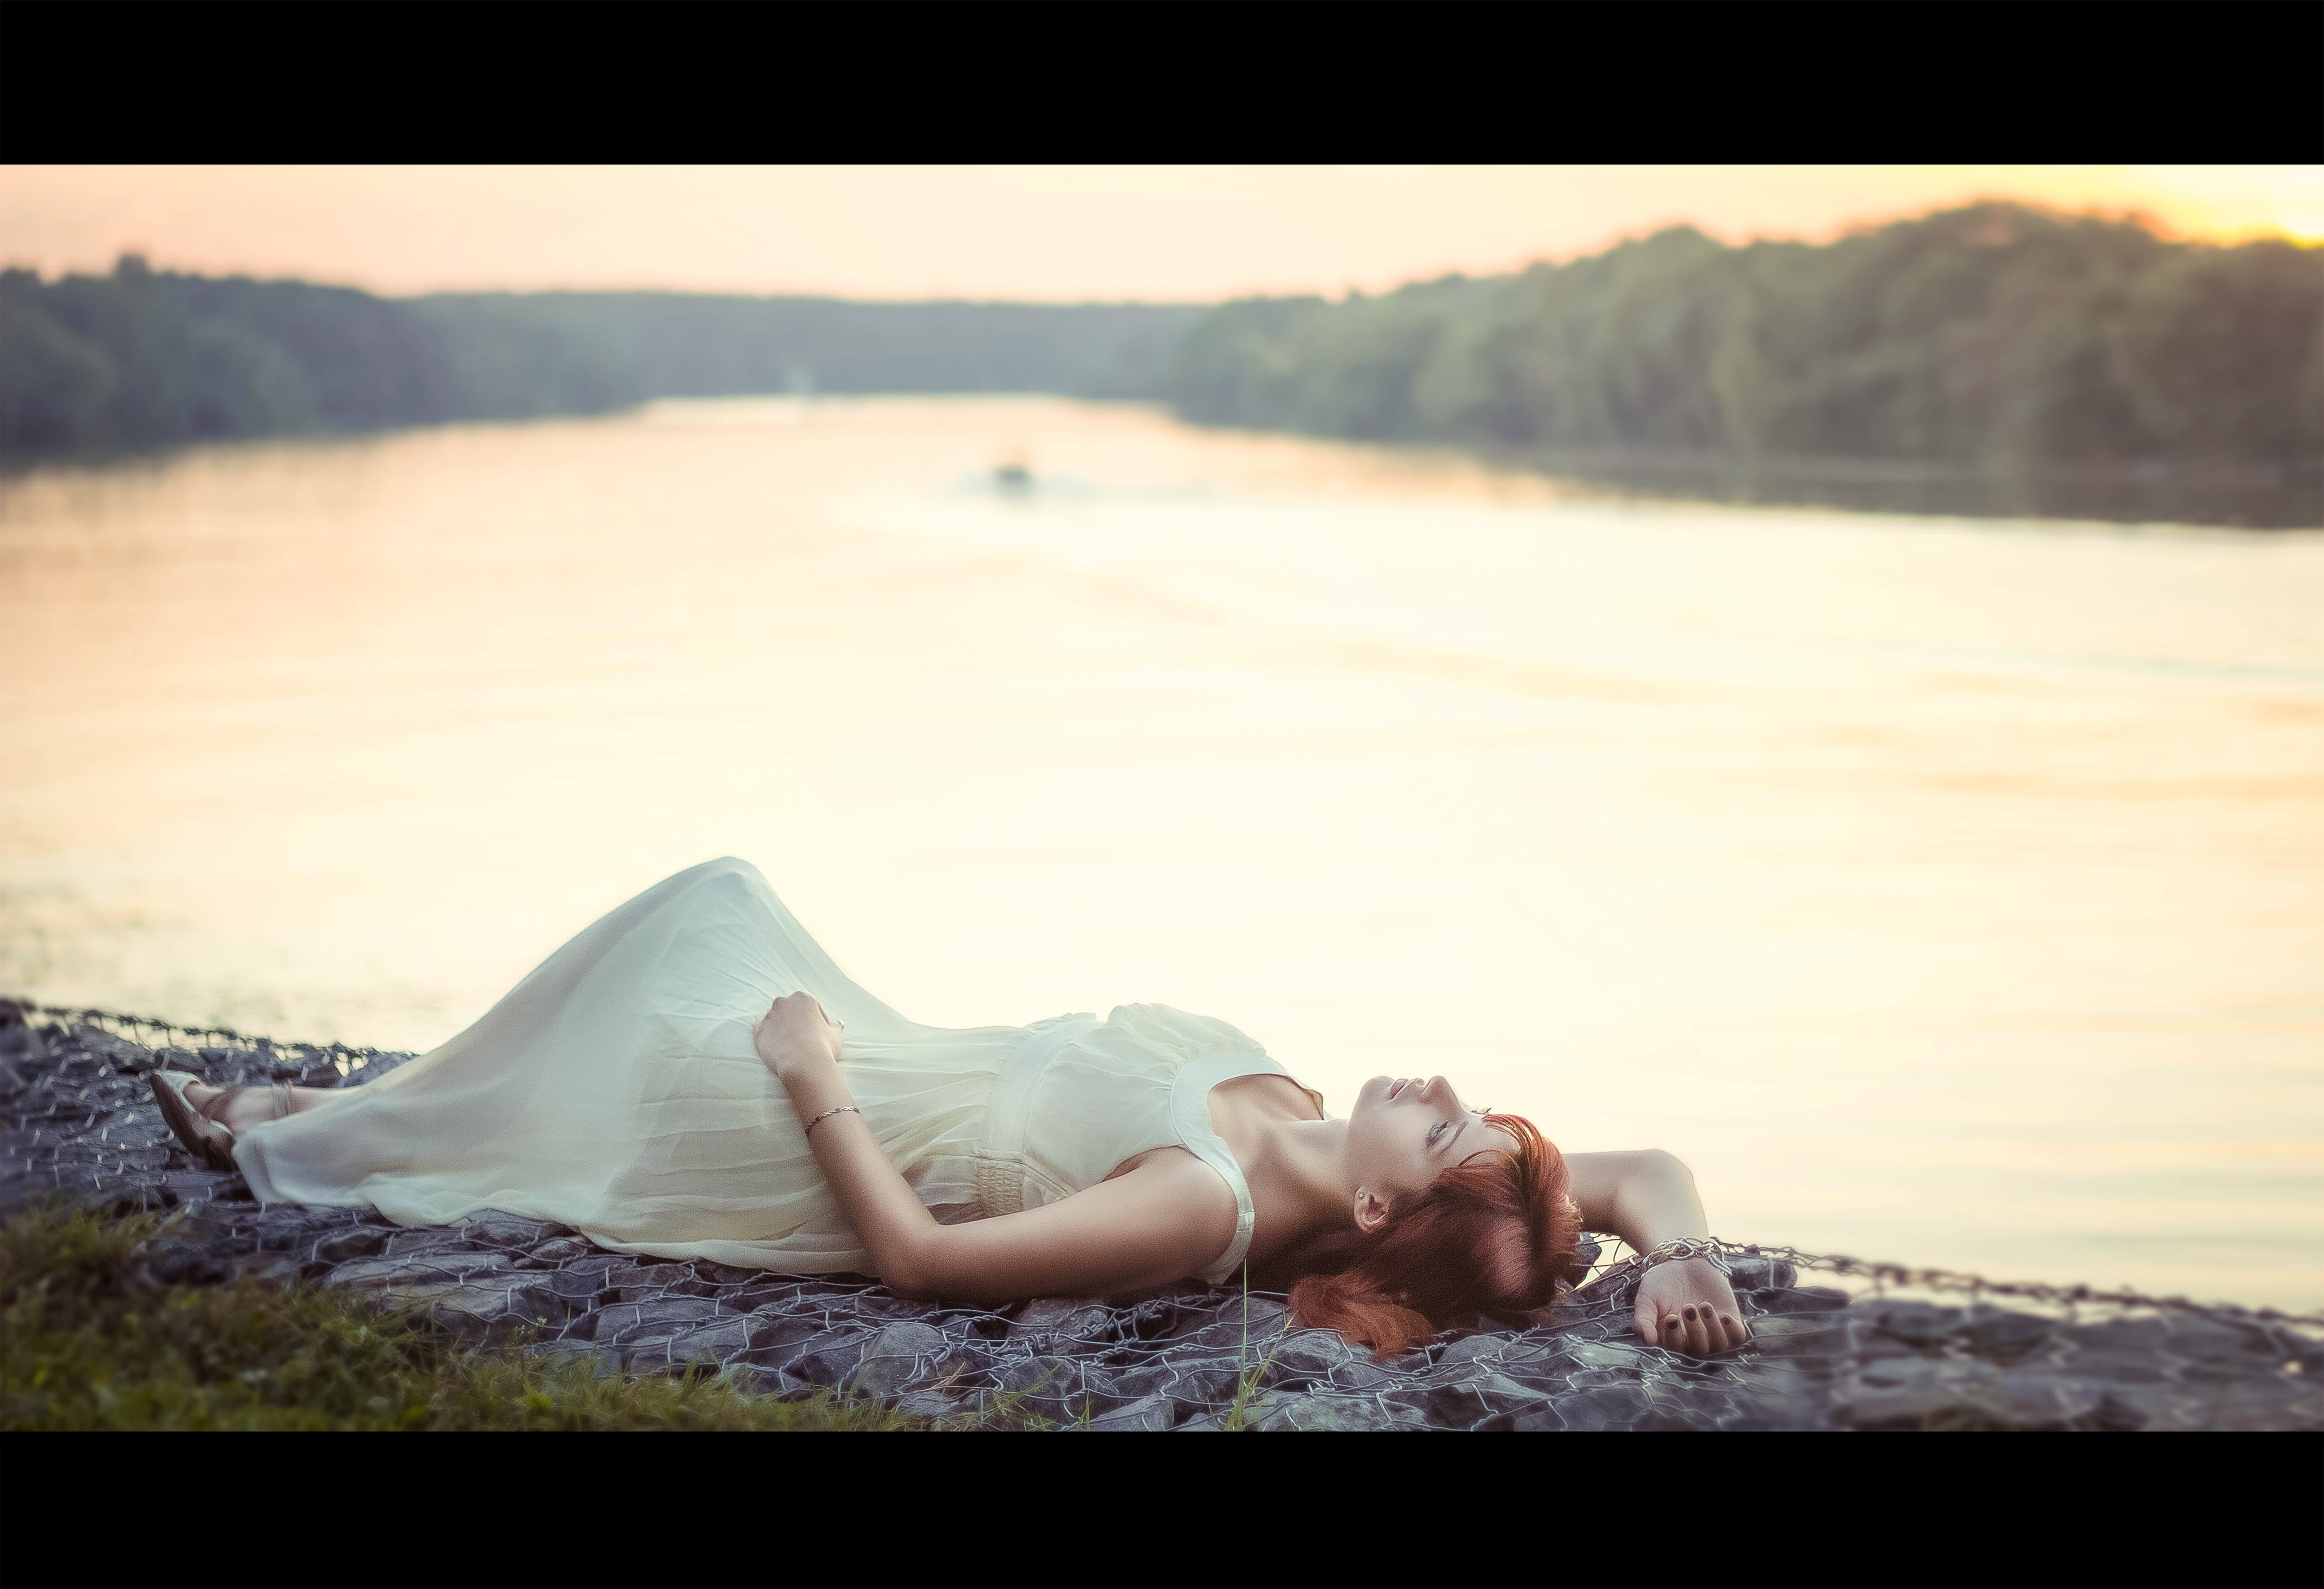 Woman Lying Near Body of Water